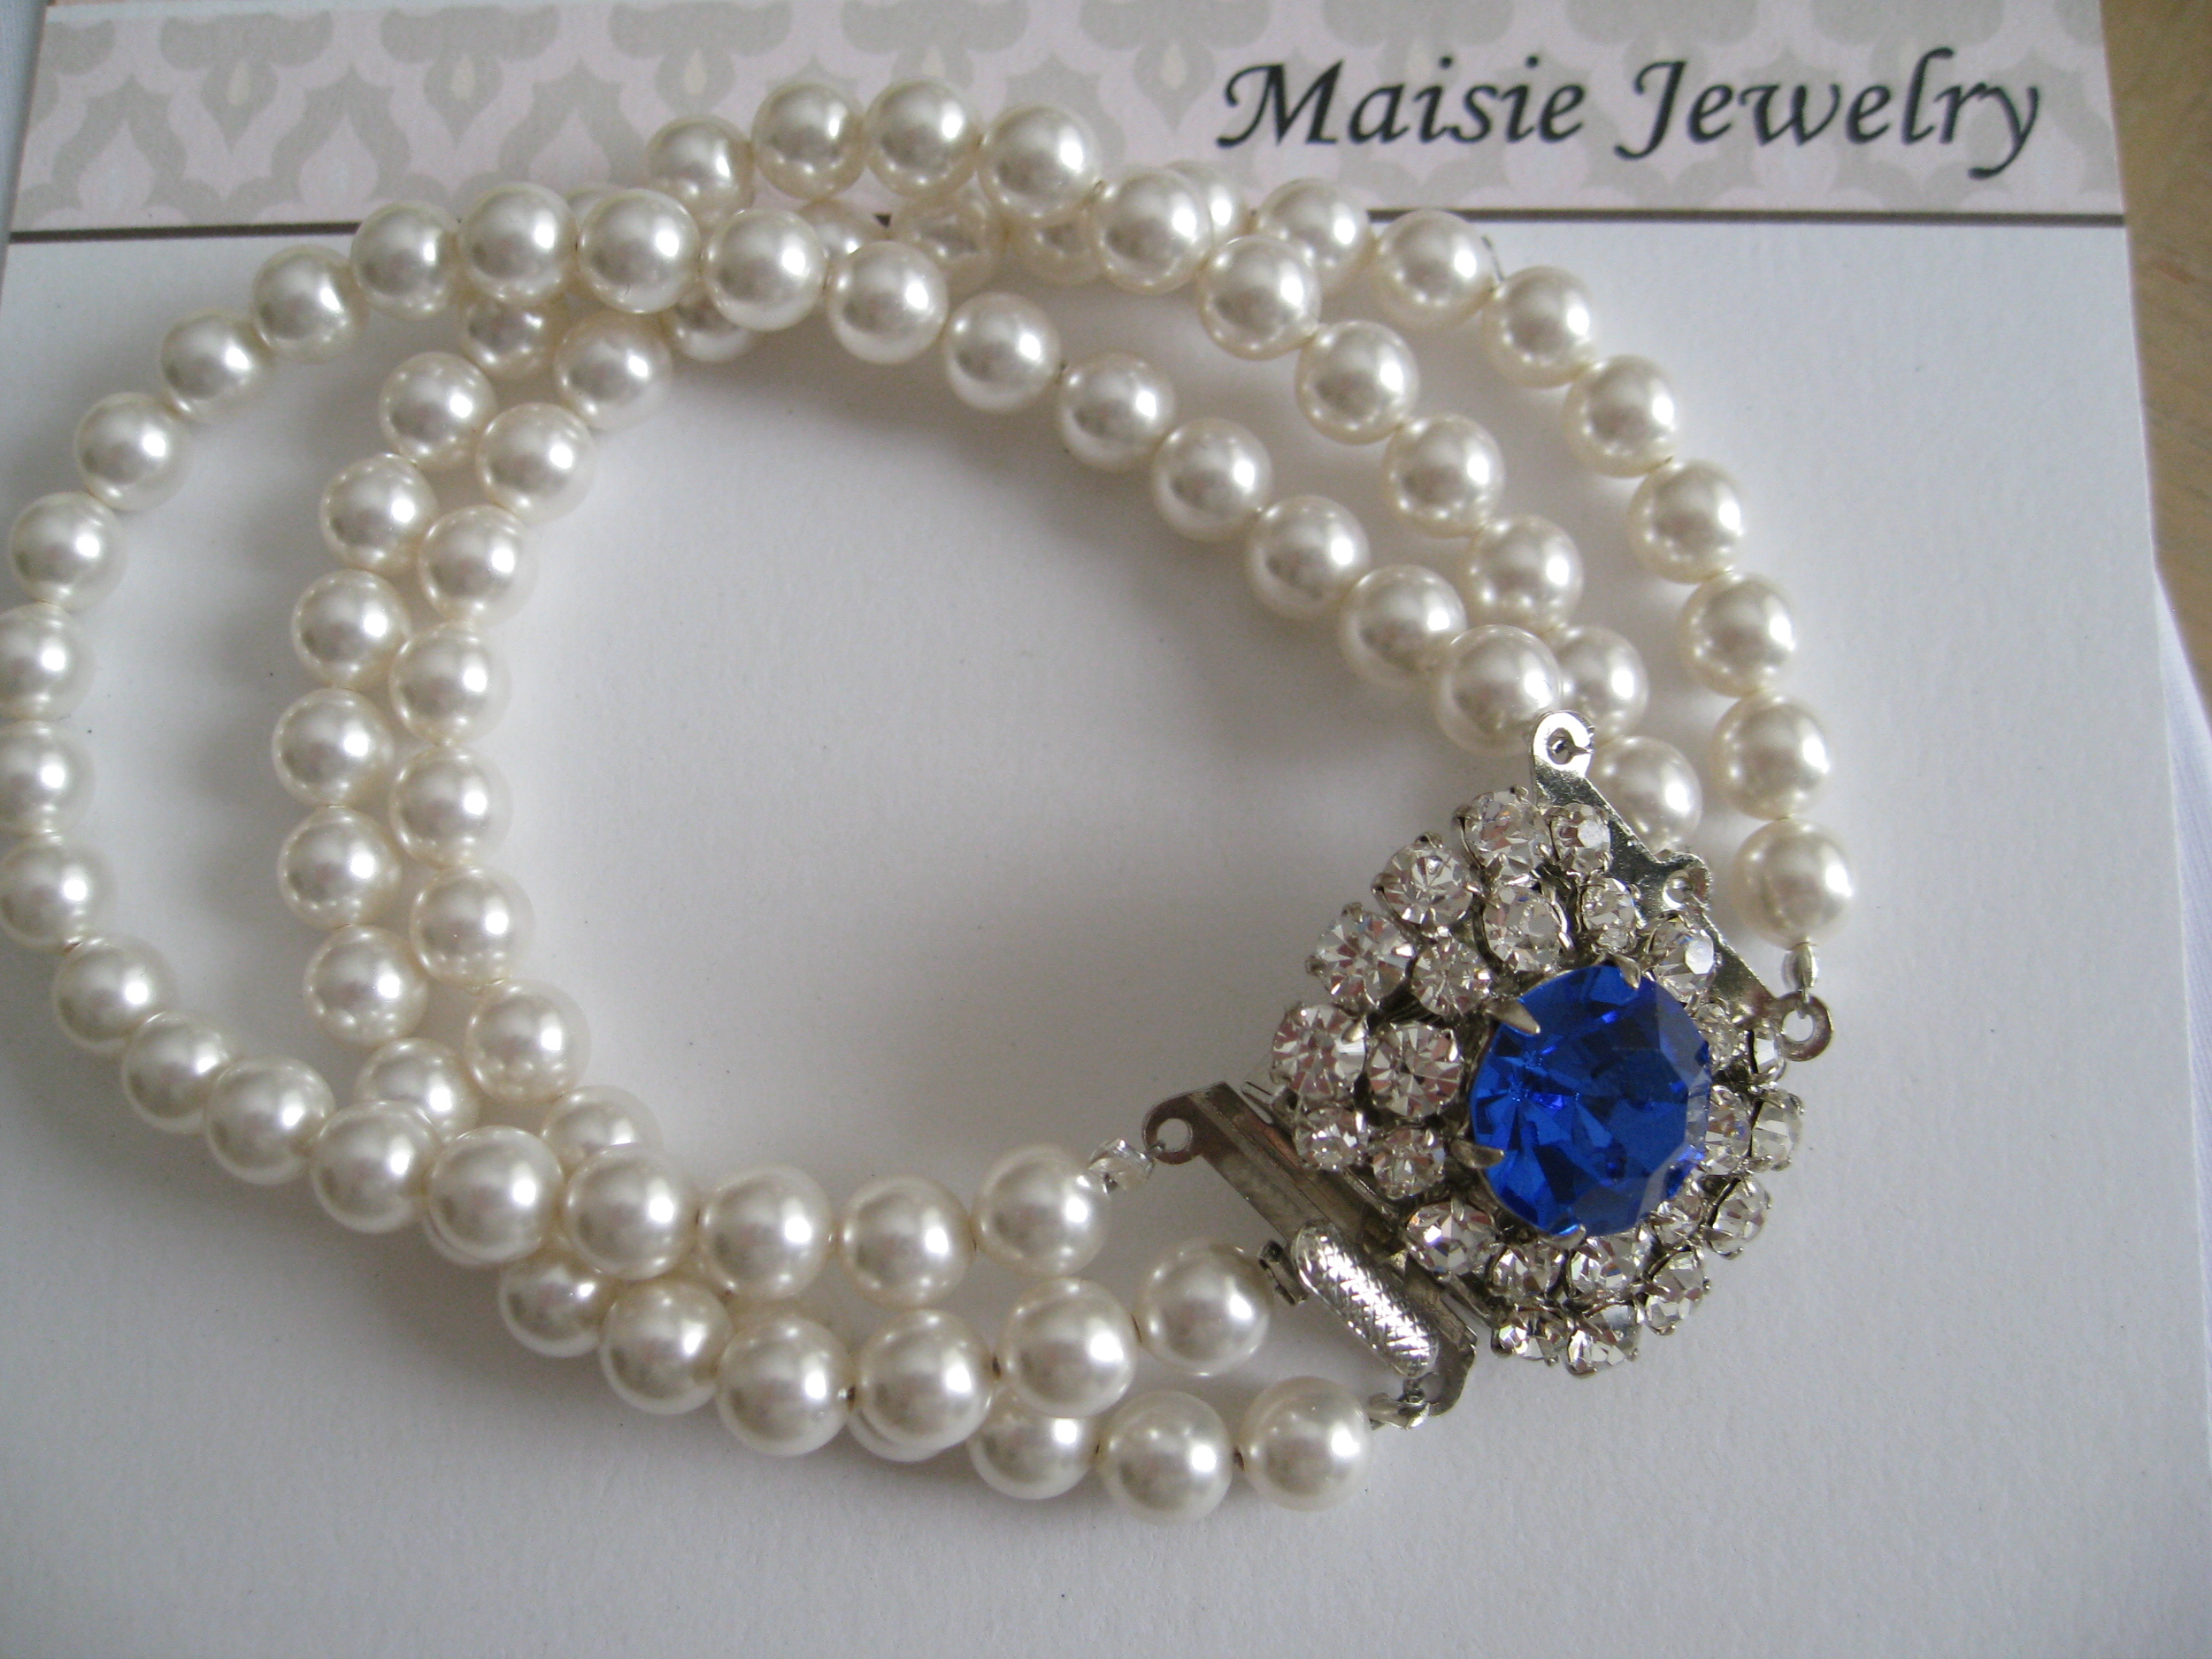 Jewelry, blue, Bracelets, Pearls, Bracelet, Something, Multi, Maisie, Strands